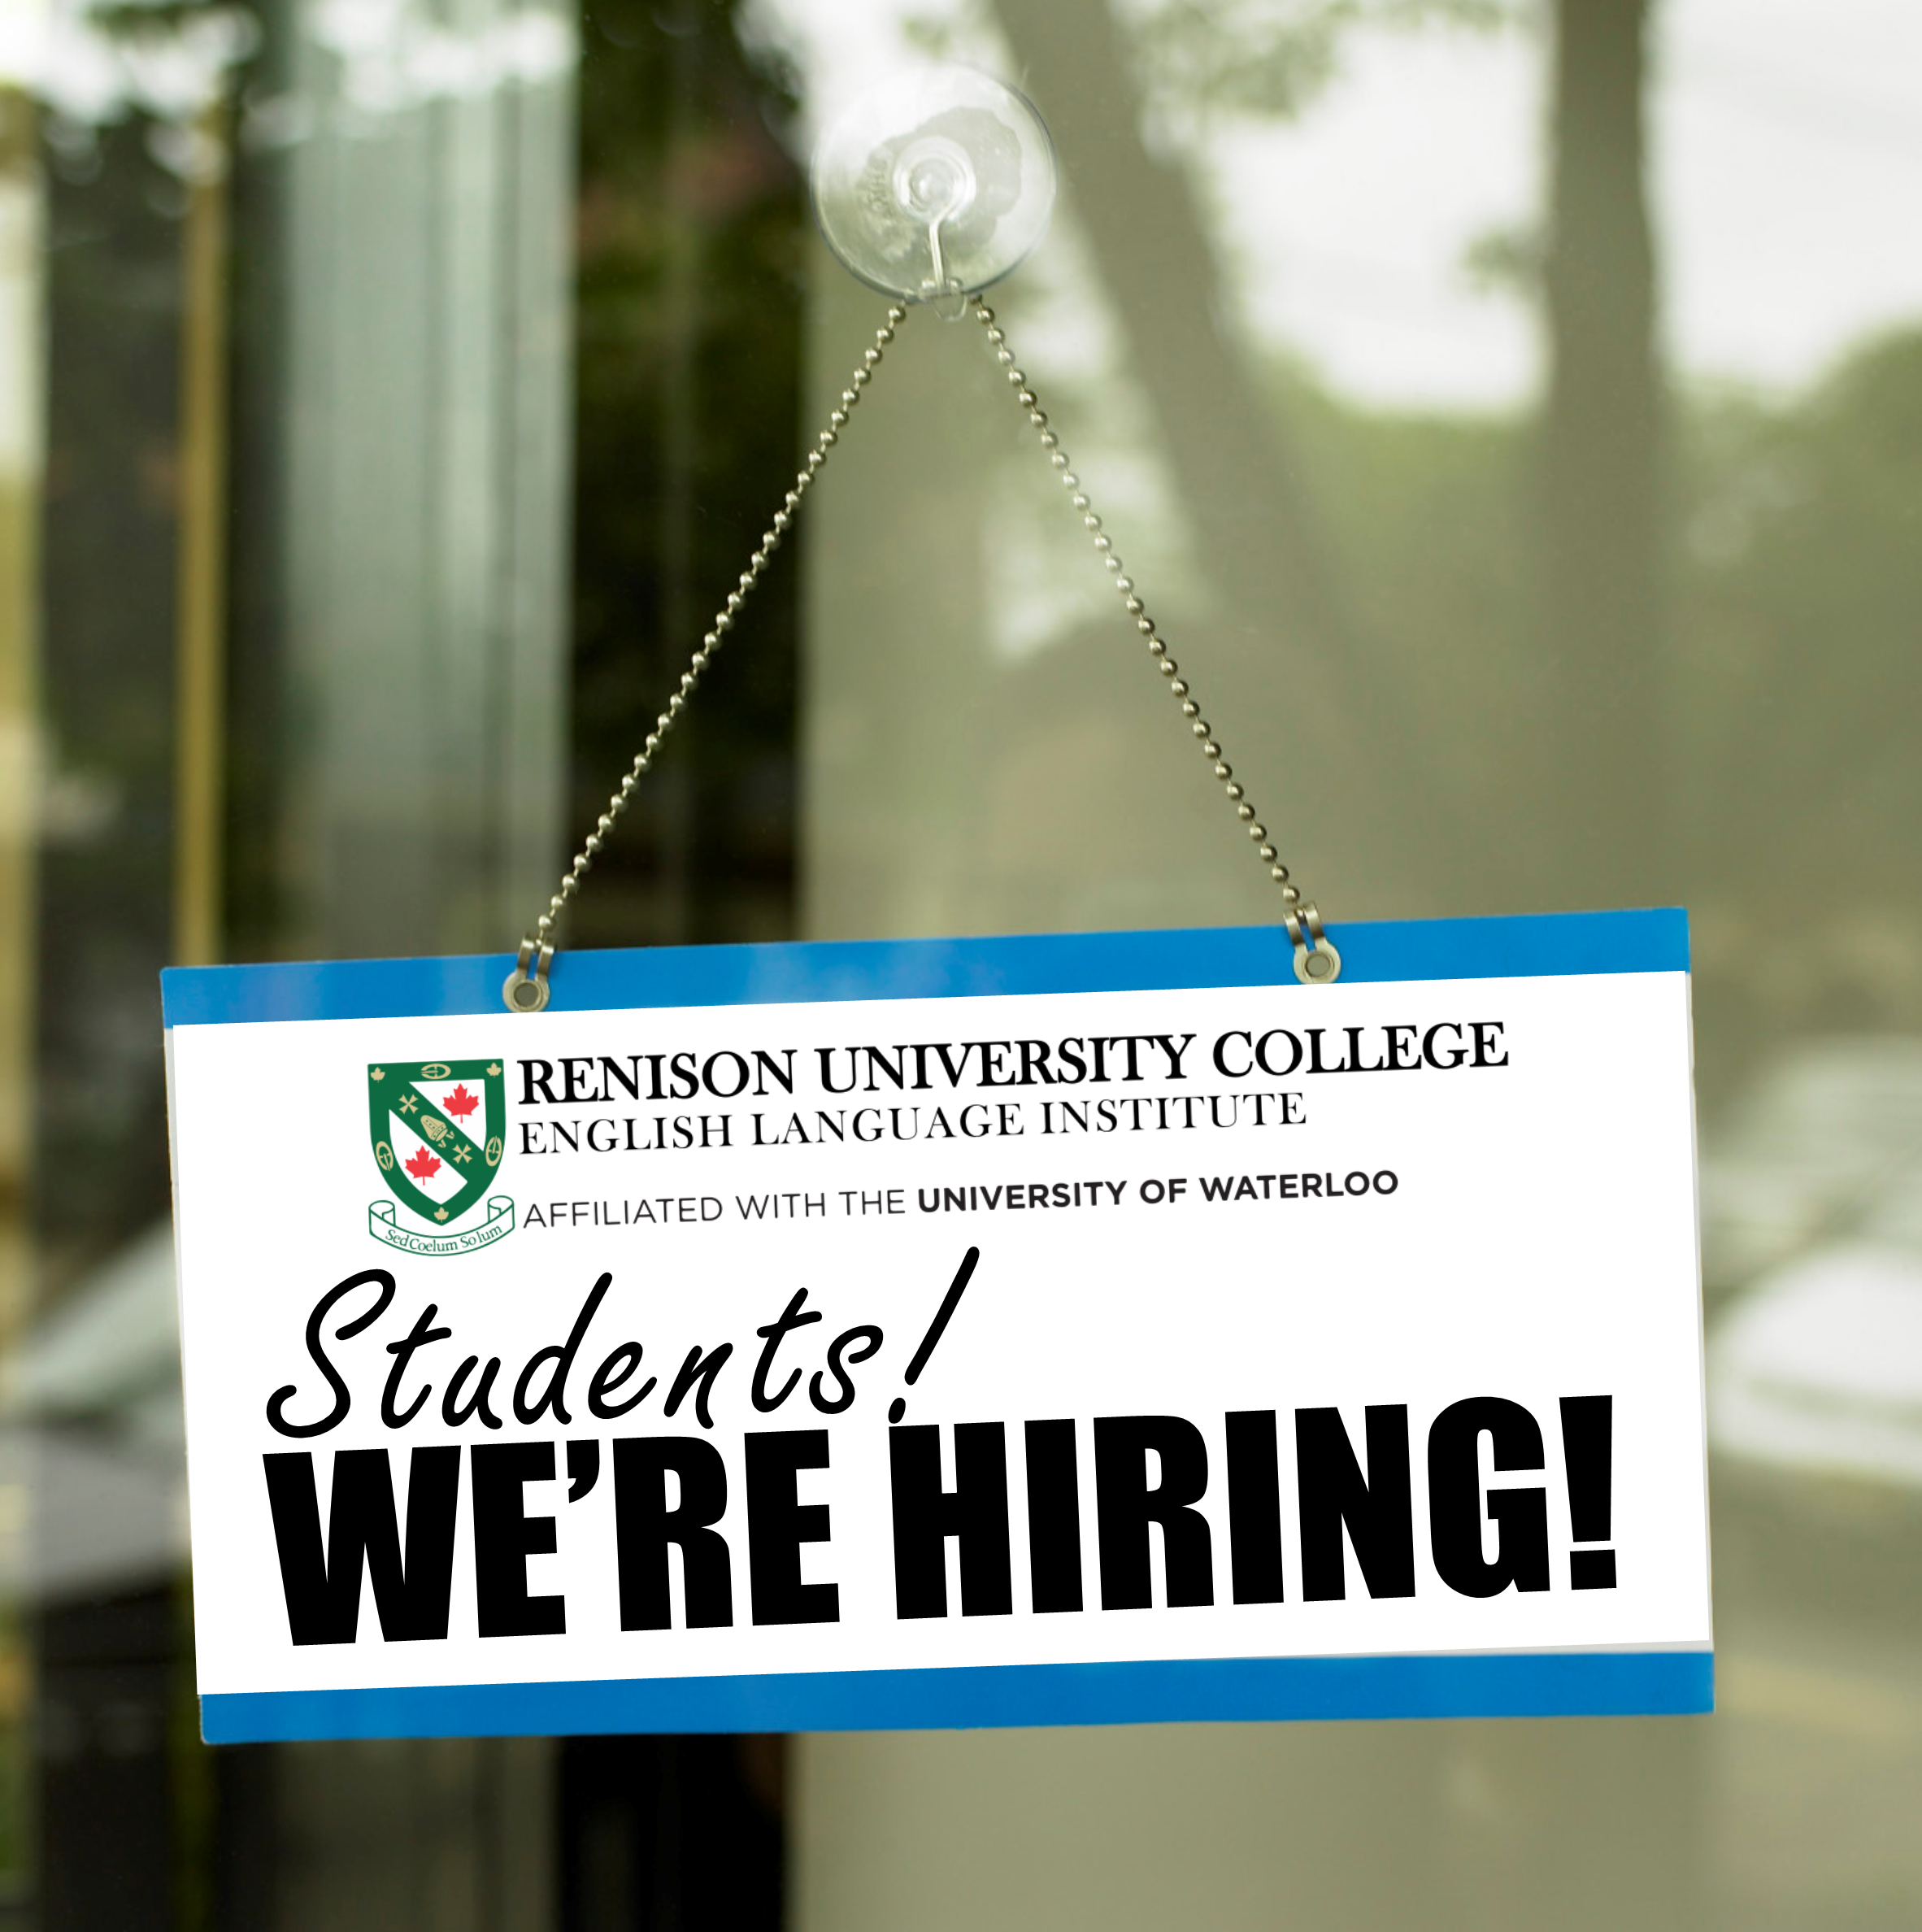 Students! We're hiring!